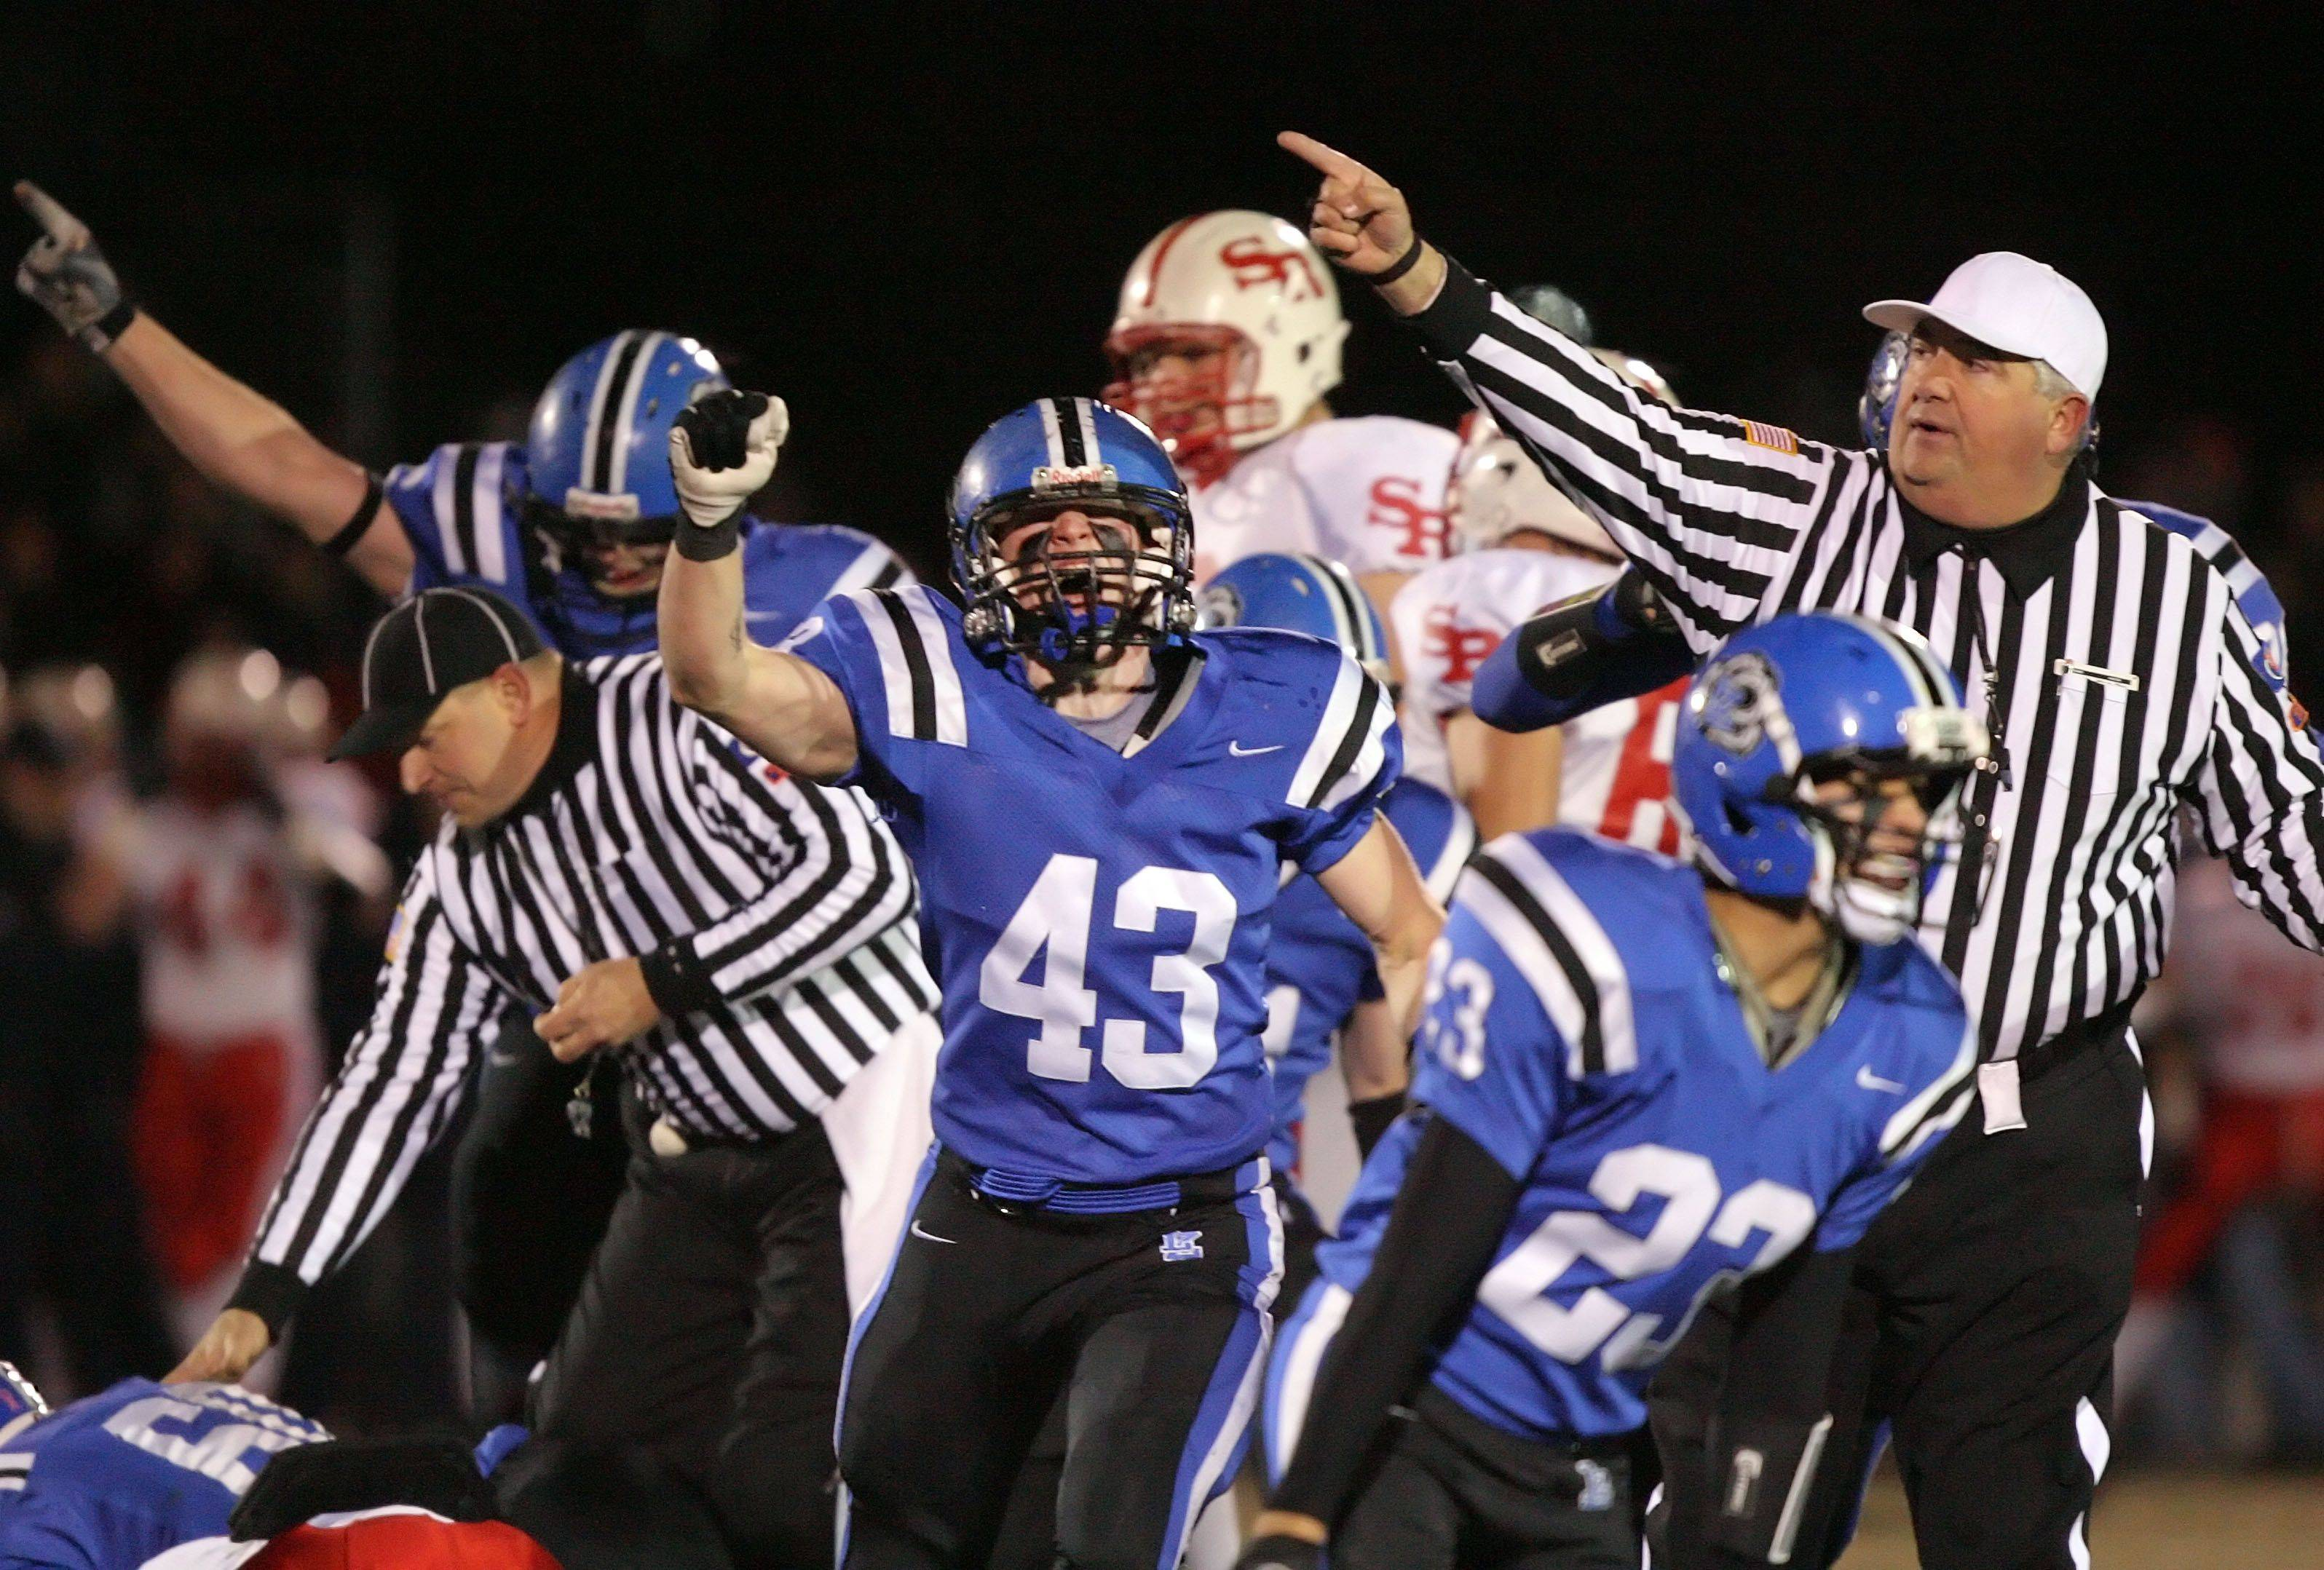 Lake Zurich's defense celebrates after recovering a St. Rita fumble during the IHSA Class 7A football semi final game Saturday night at Lake Zurich High School.